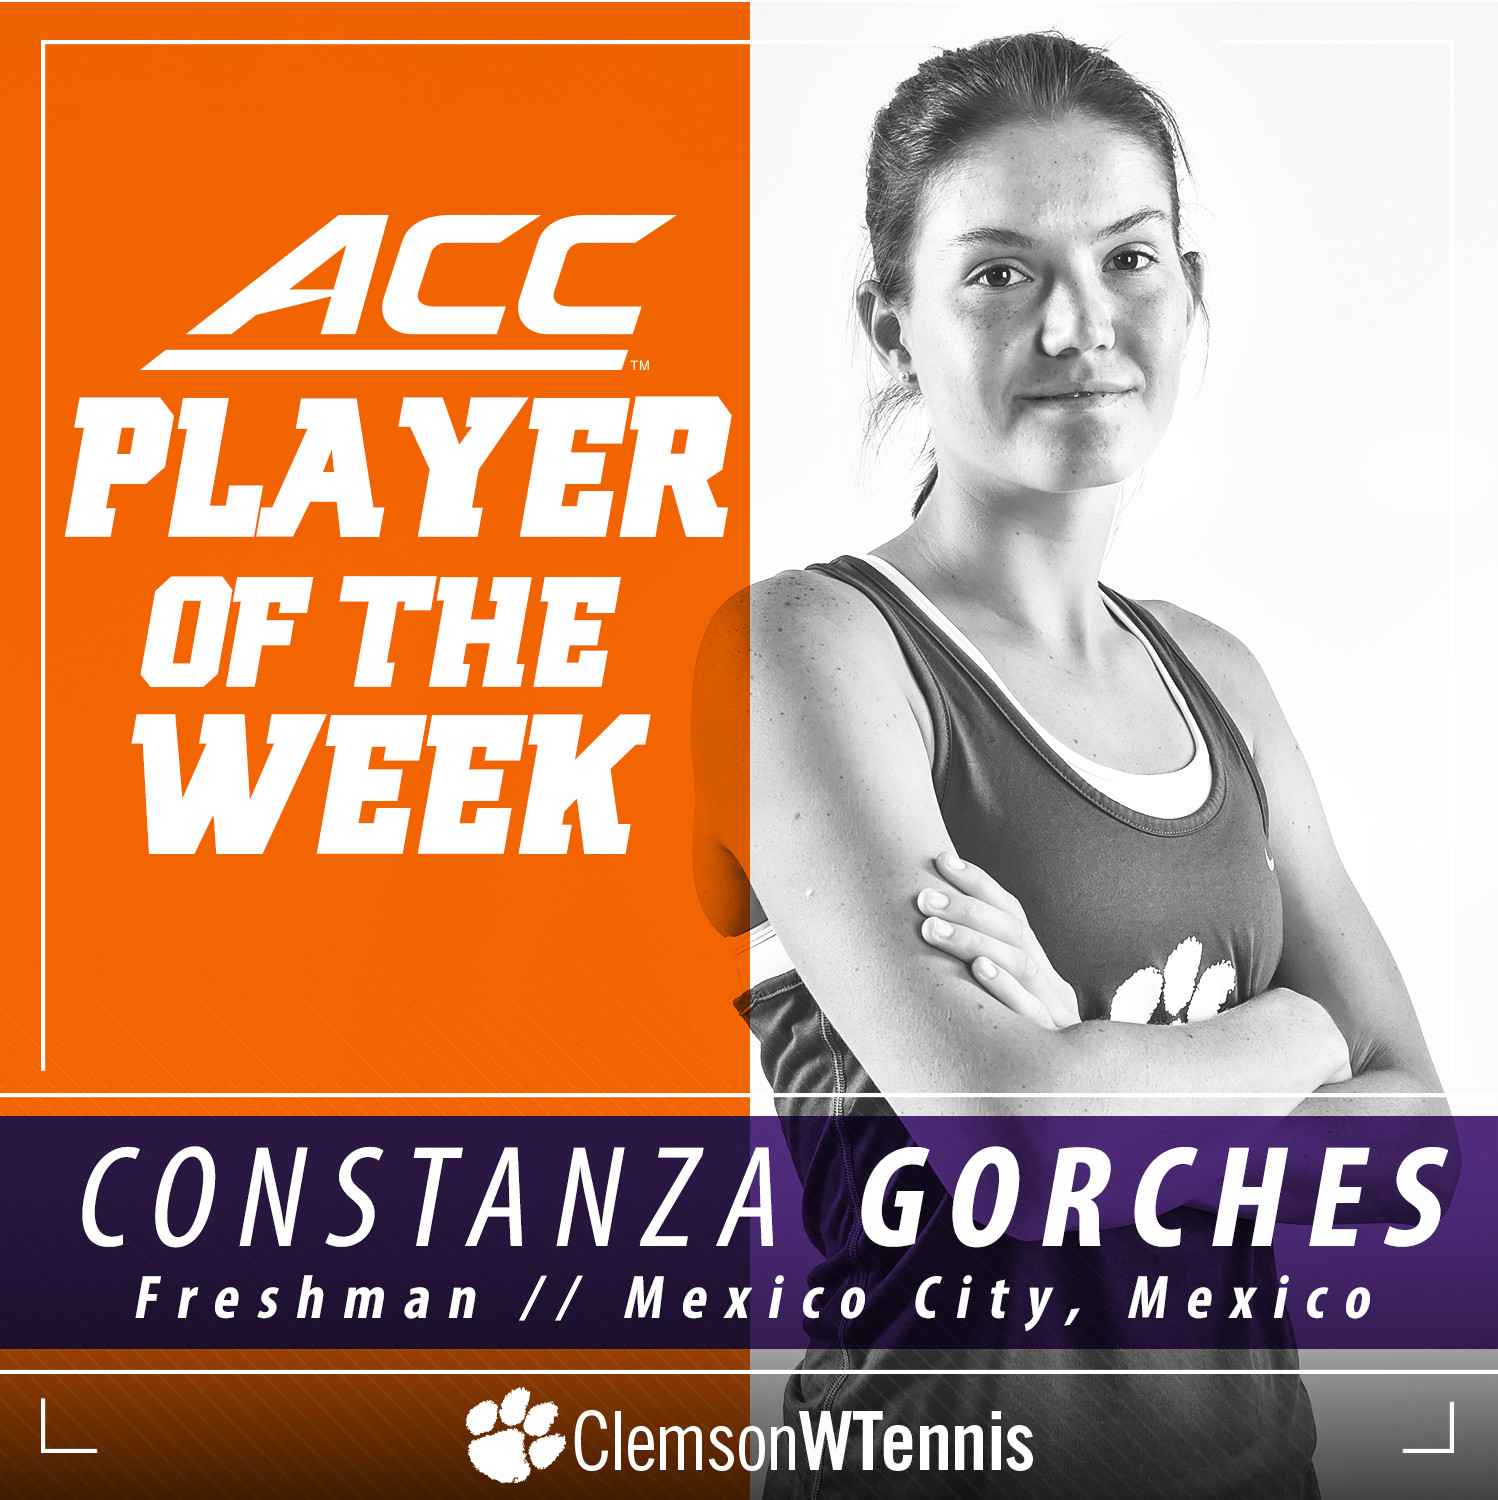 Gorches Earns ACC Player of the Week Honors